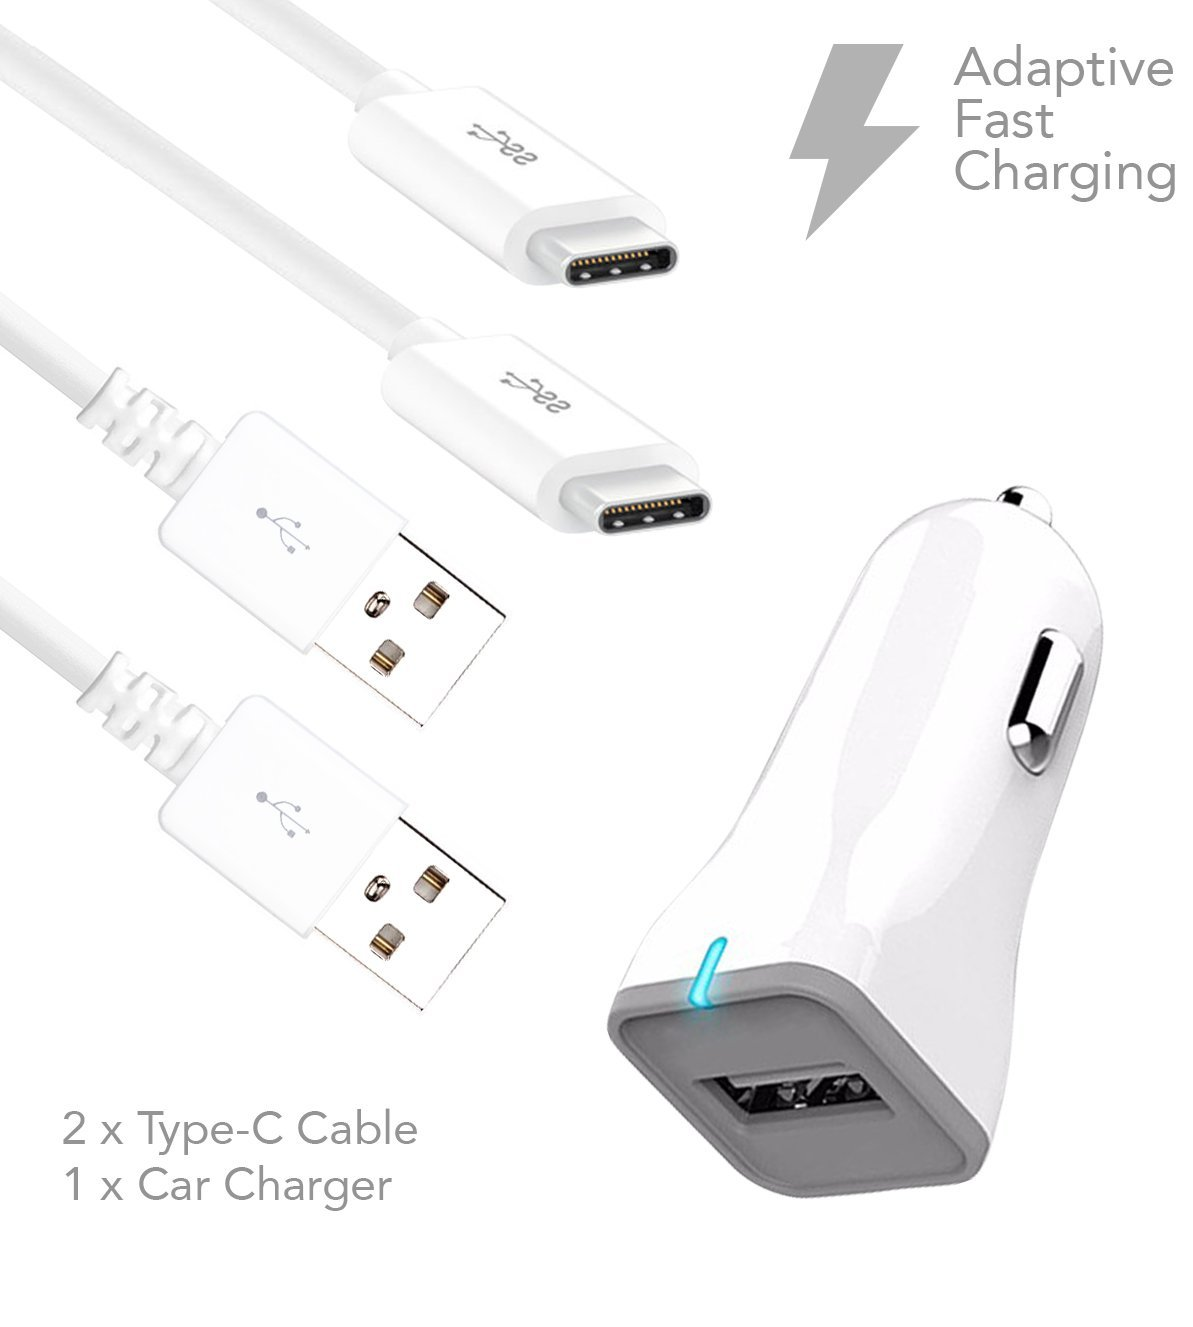 LG V20 Charger Fast Type-C USB 2.0 Cable Kit by Ixir - {Fast Car Charger + 2 Type-C Cable}